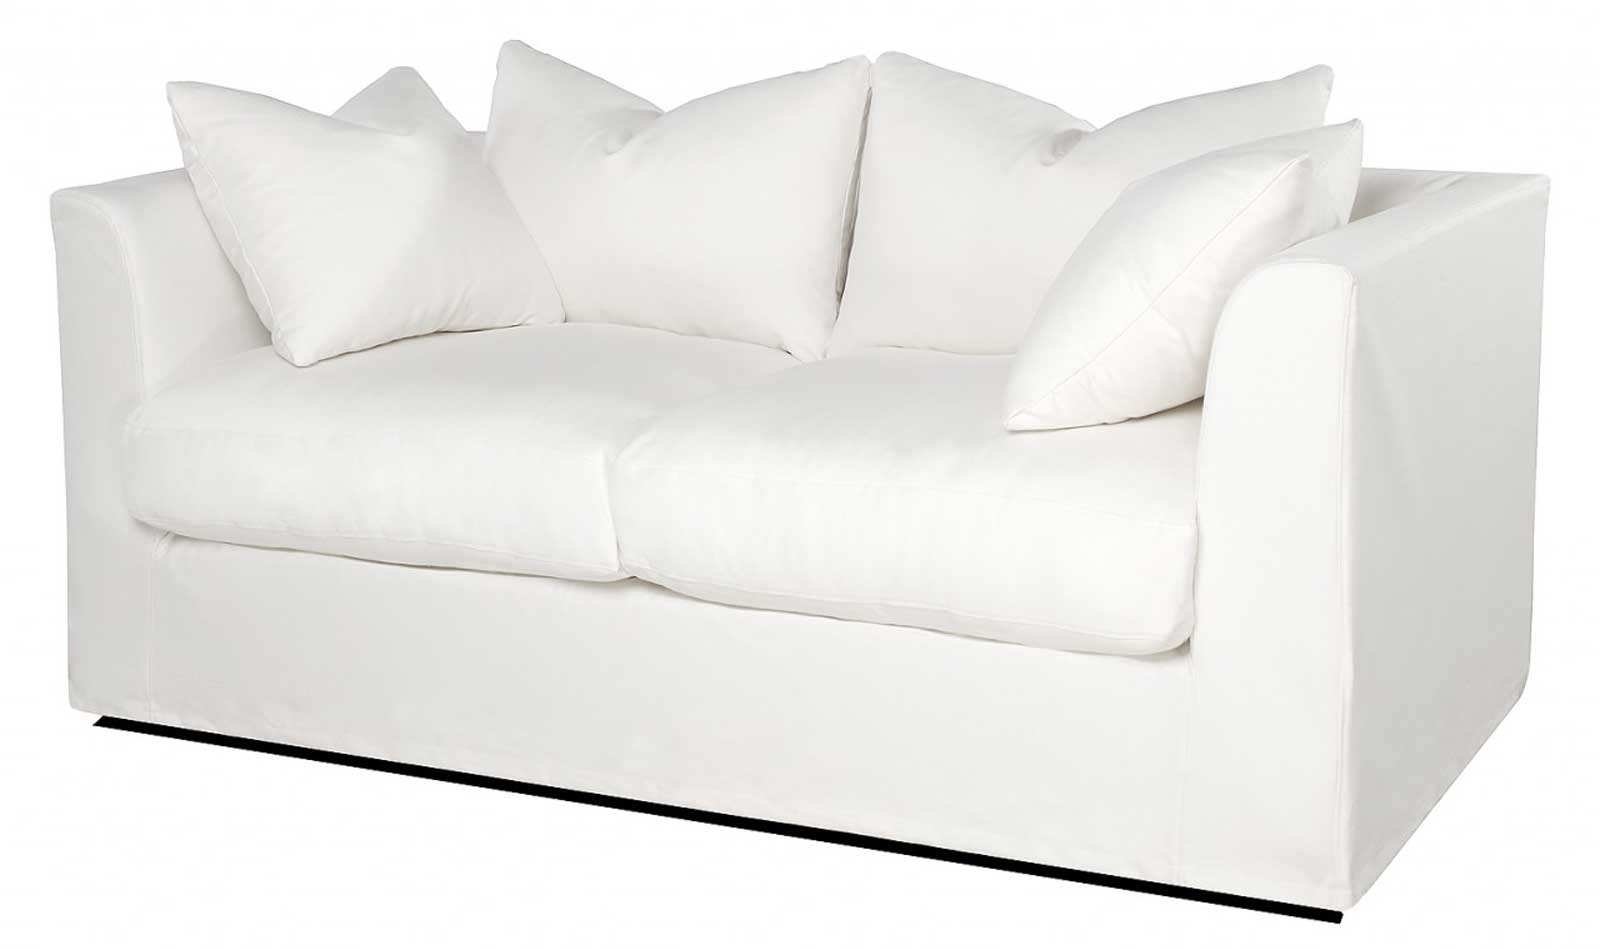 Upholstery White Sleeper Sofas Sectional with Slipcovers